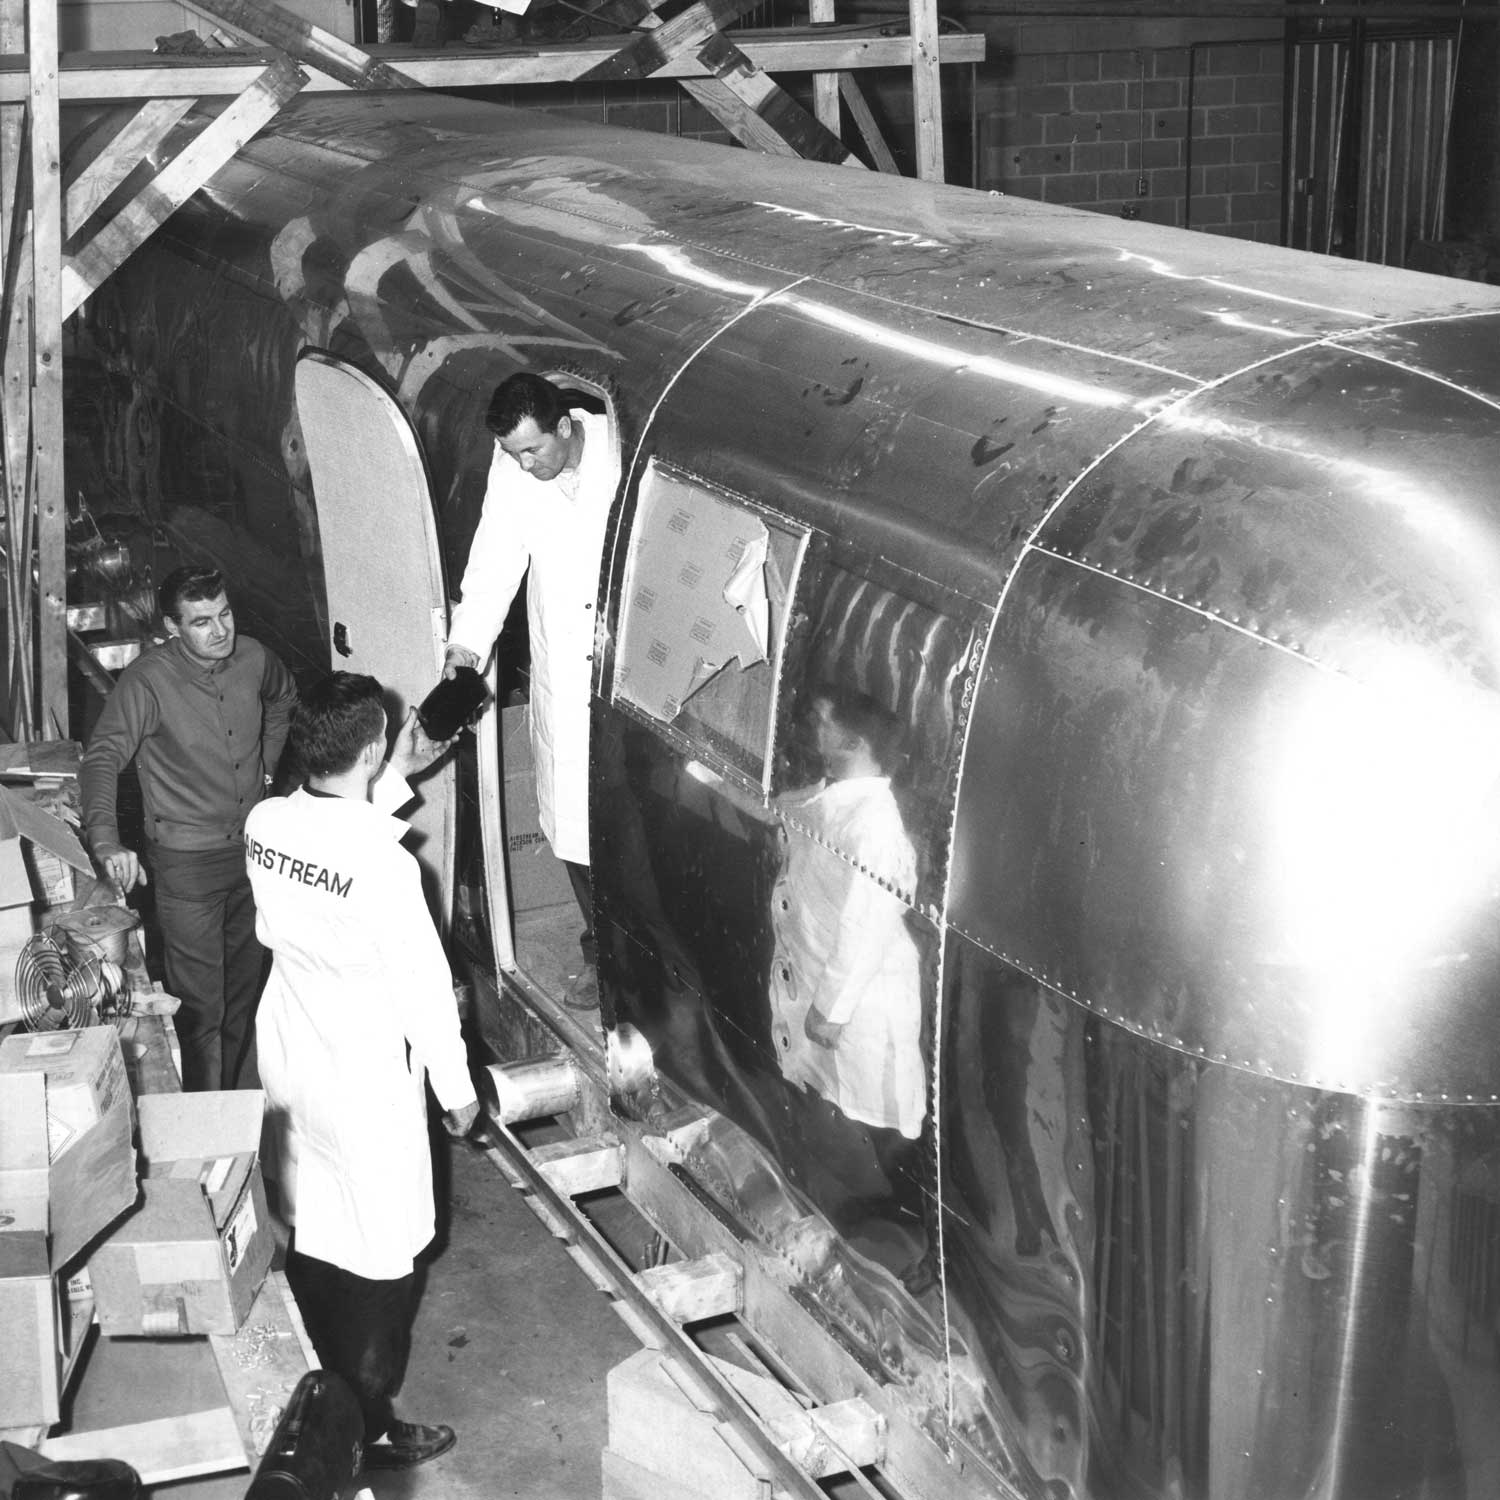 A rare look of the MQF during its construction in the Airstream Ohio plant just 15 miles from Neil Armstrong's birthplace. The key modifications included redundant systems for ventilation, power, air, plumbing and its foundation frame, which had to be modified to be carried and secured to its transportation vehicles. (Image: Reproduced with permission by Airstream, Inc.)